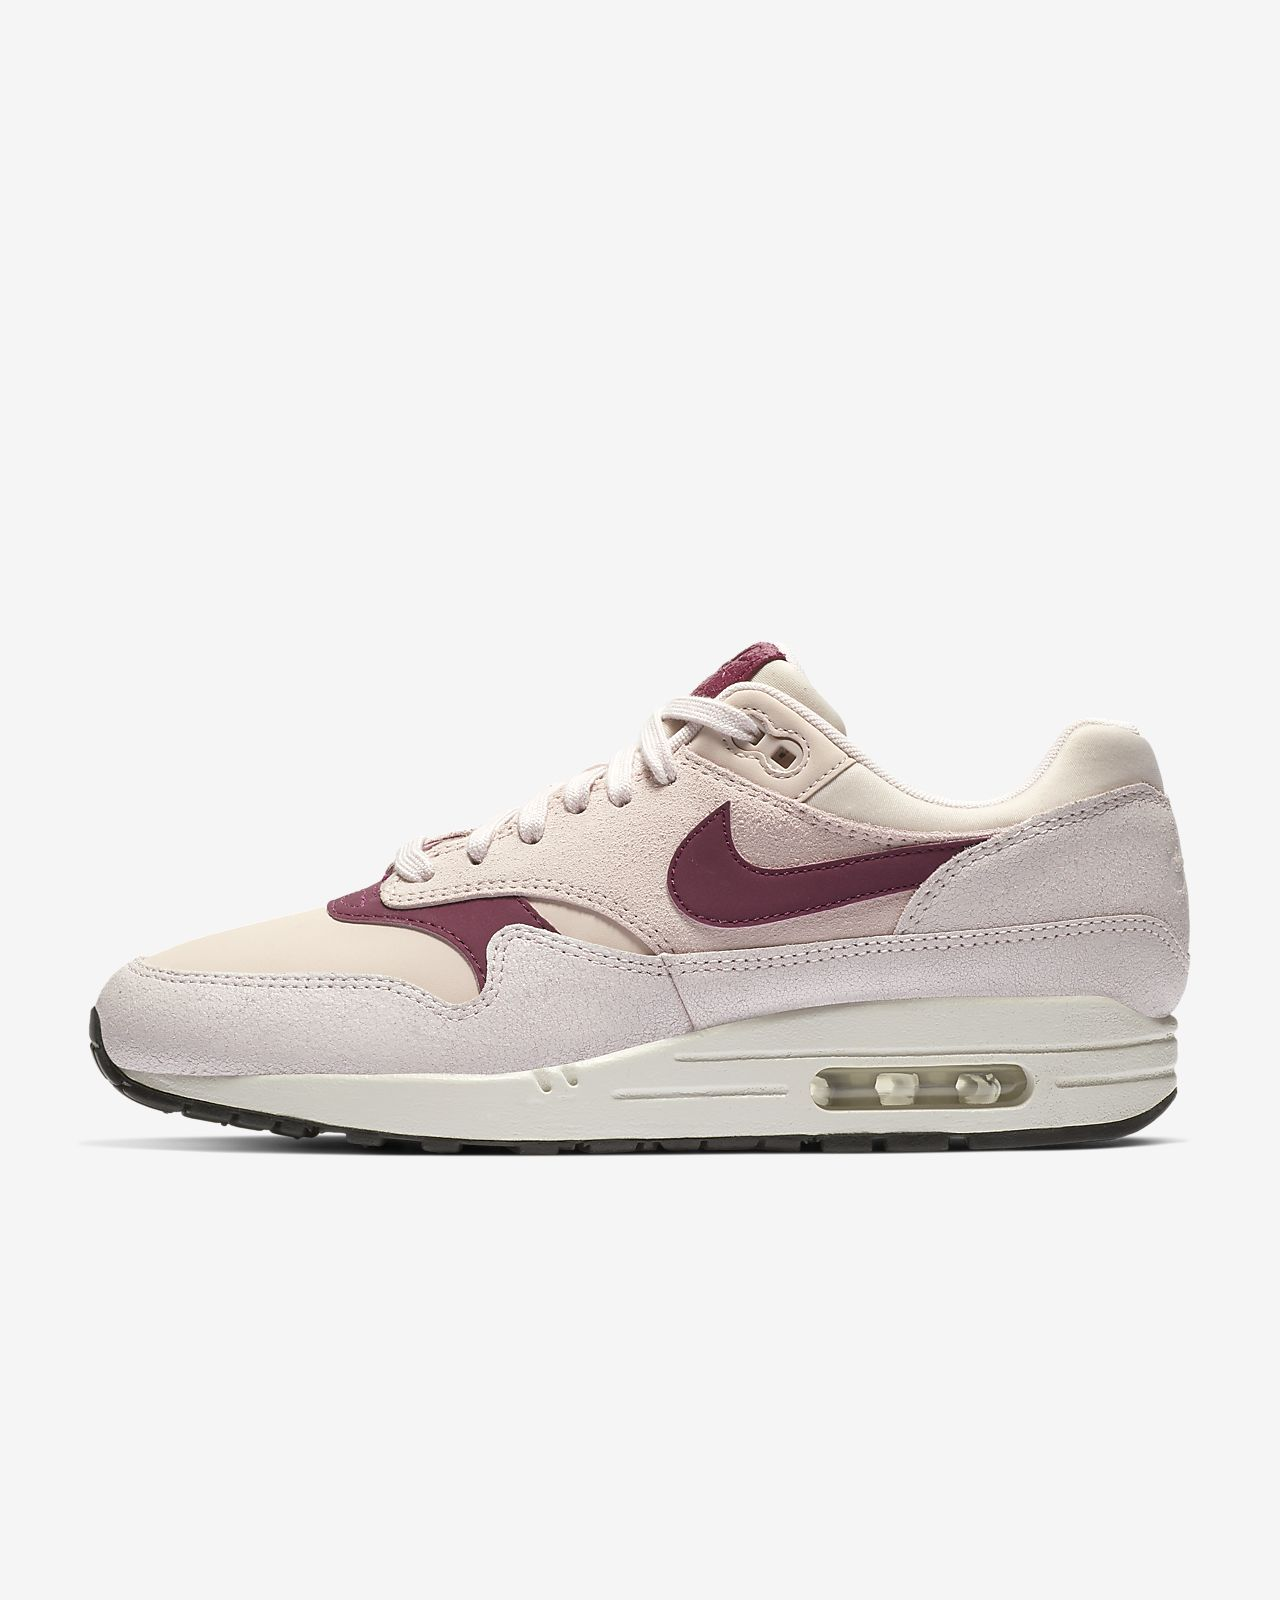 official photos 375d9 795ea Women s Shoe. Nike Air Max 1 Premium